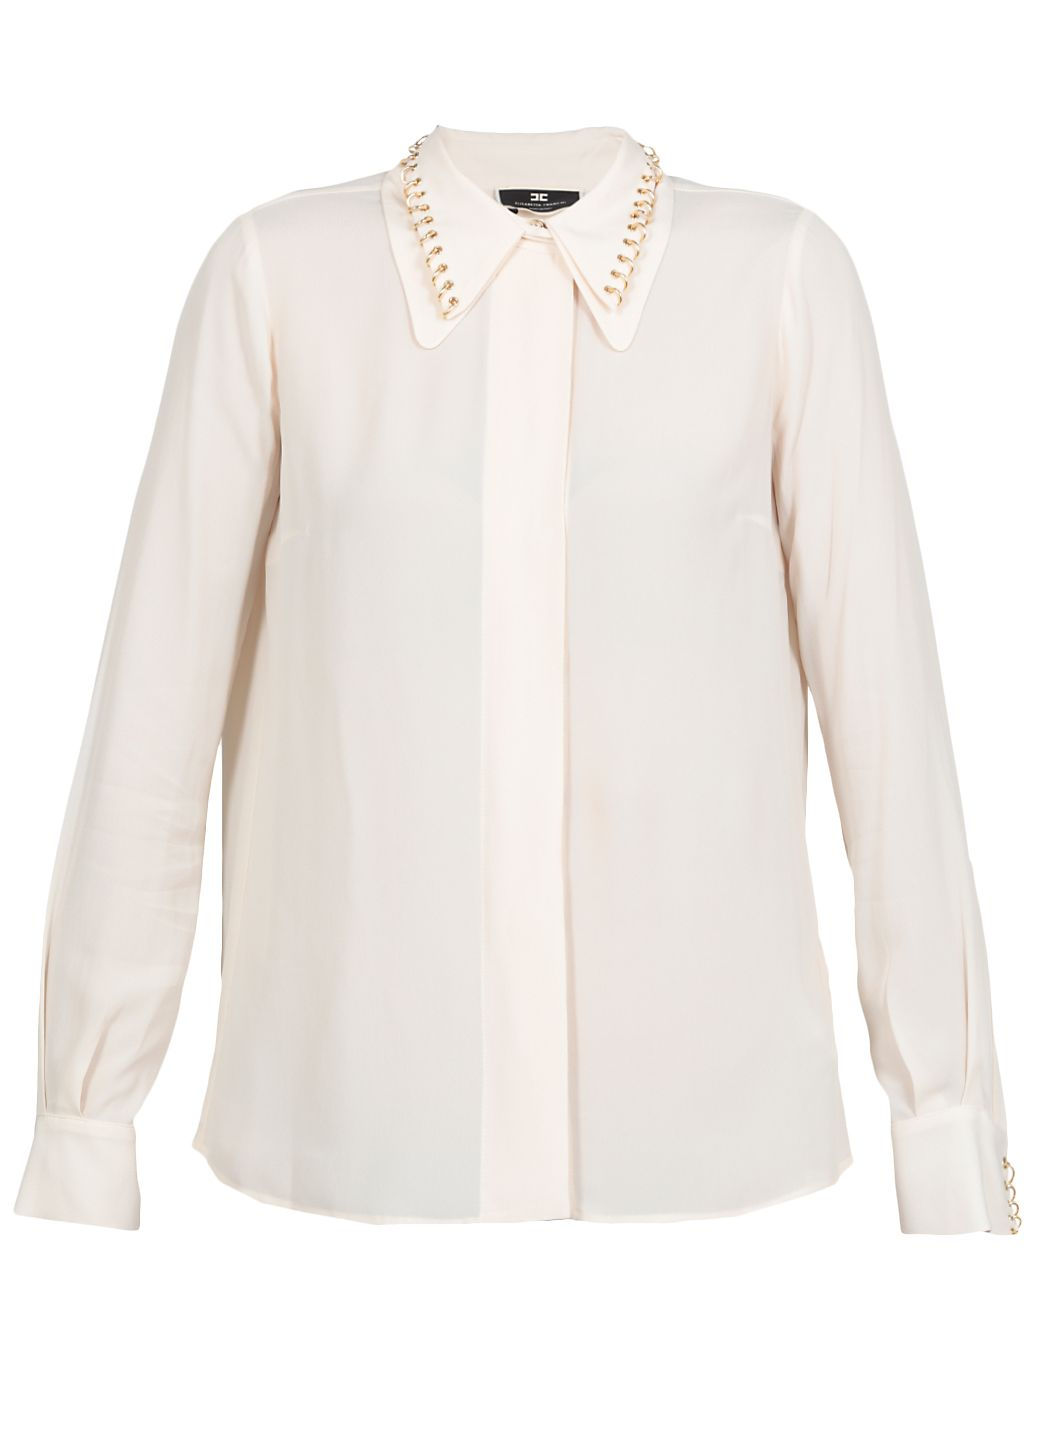 Camicia in viscosa con borchie light gold